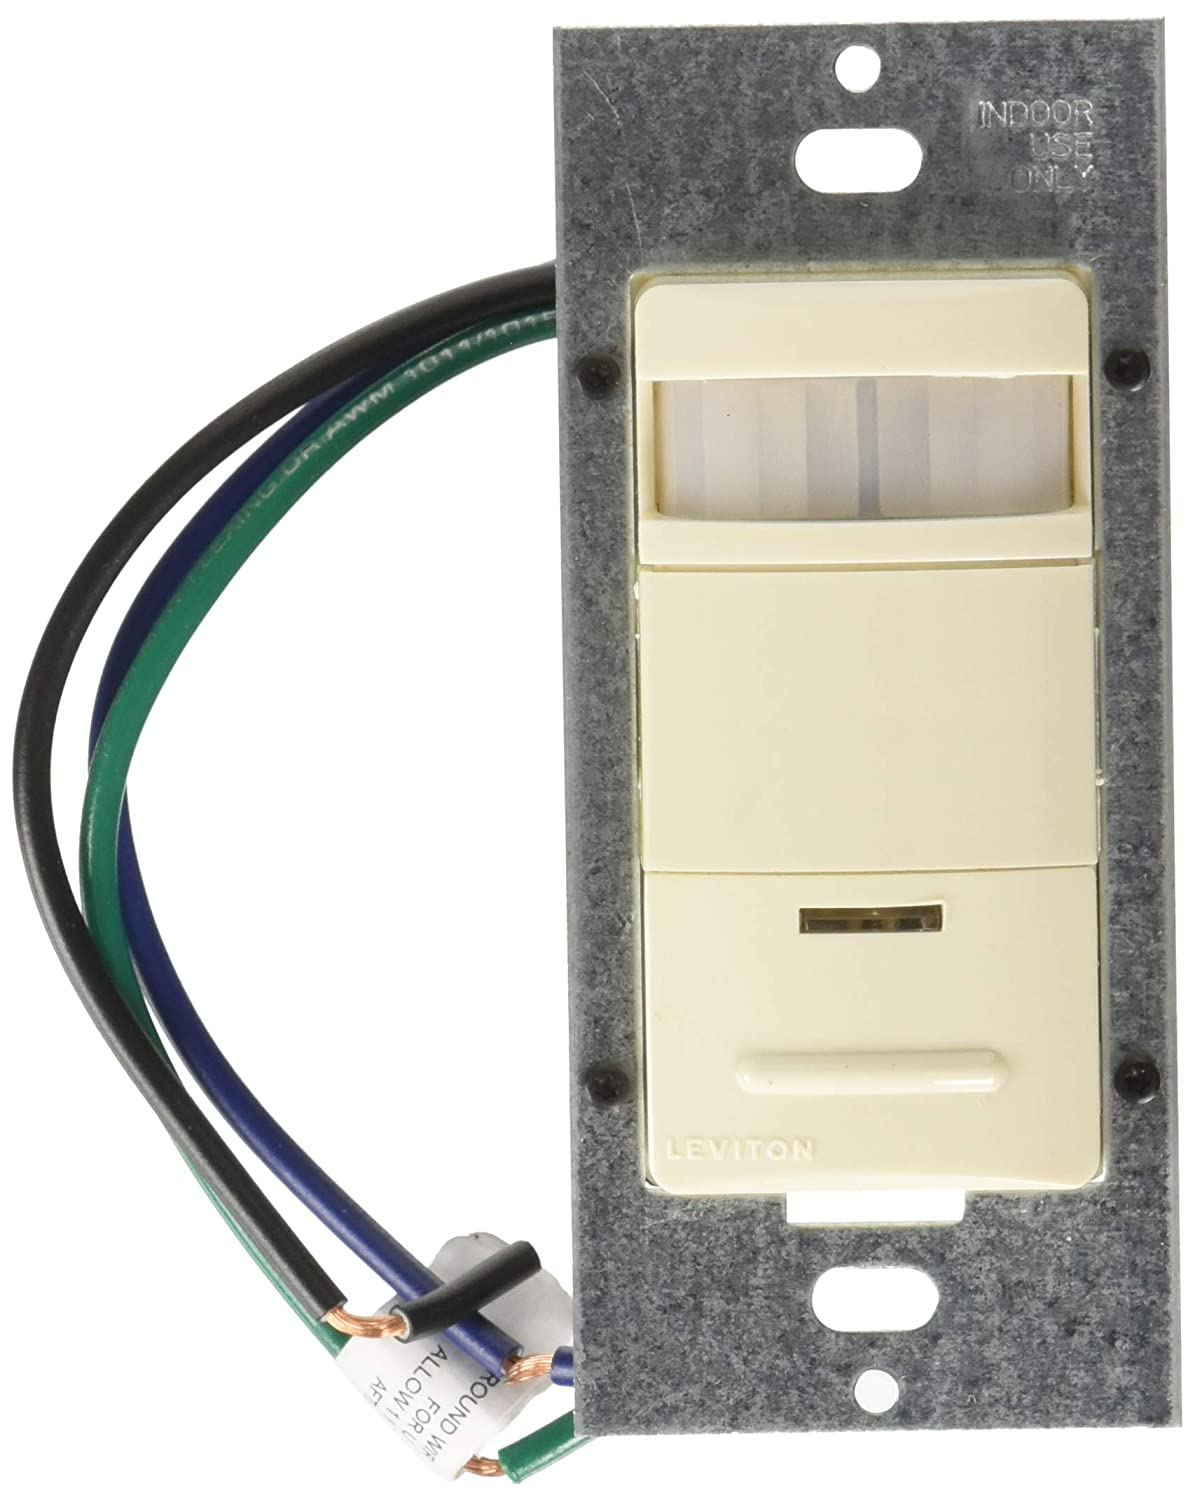 Home Depot 4 Way Decora Switch